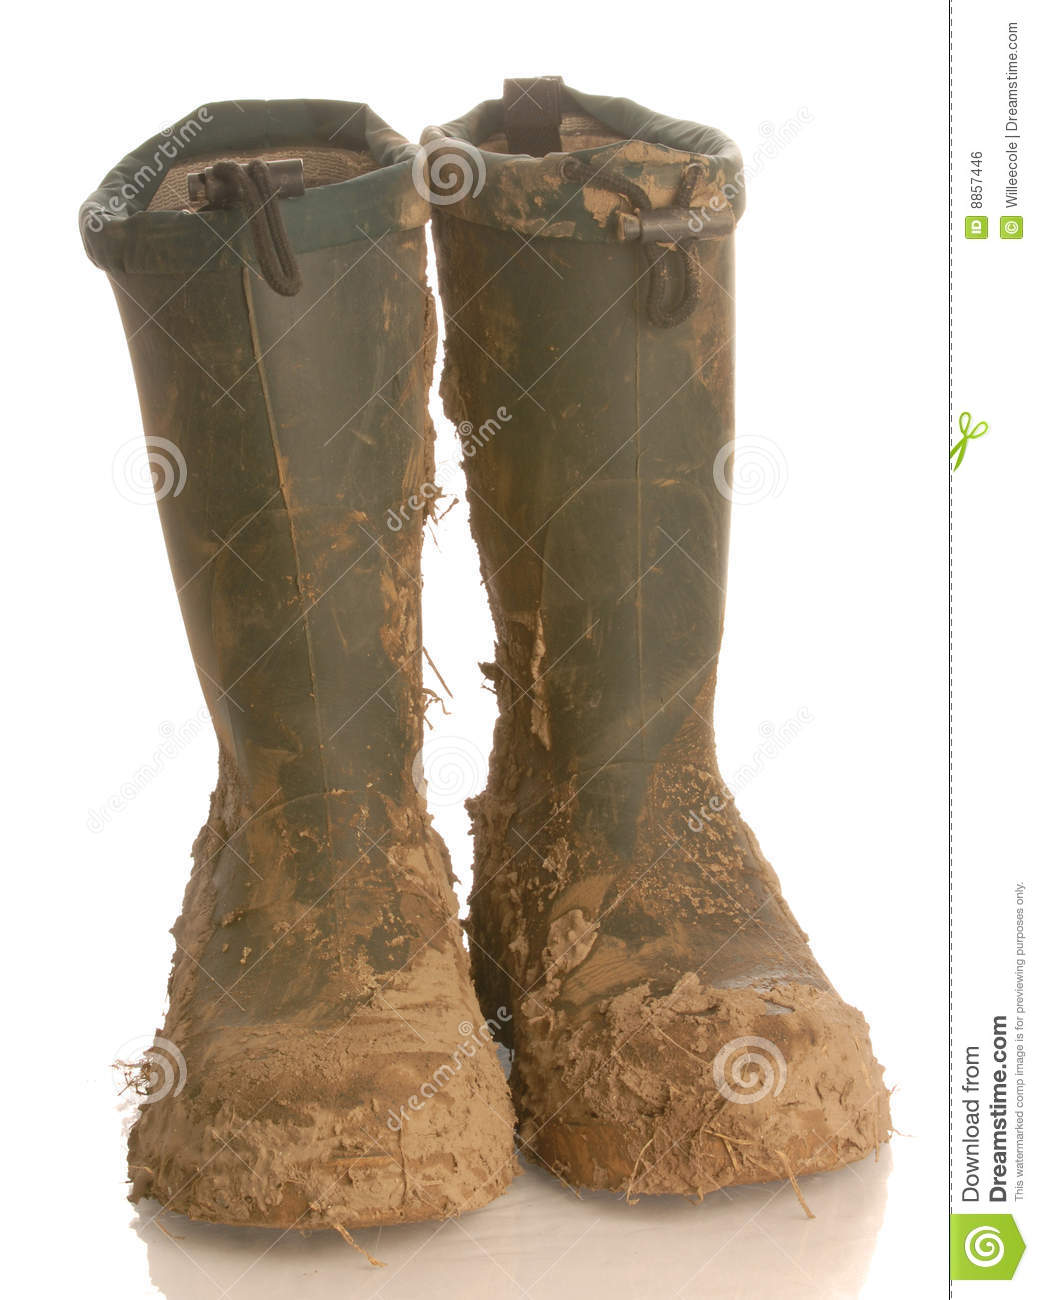 Muddy Rubber Boots Royalty Free Stock Image   Image  8857446